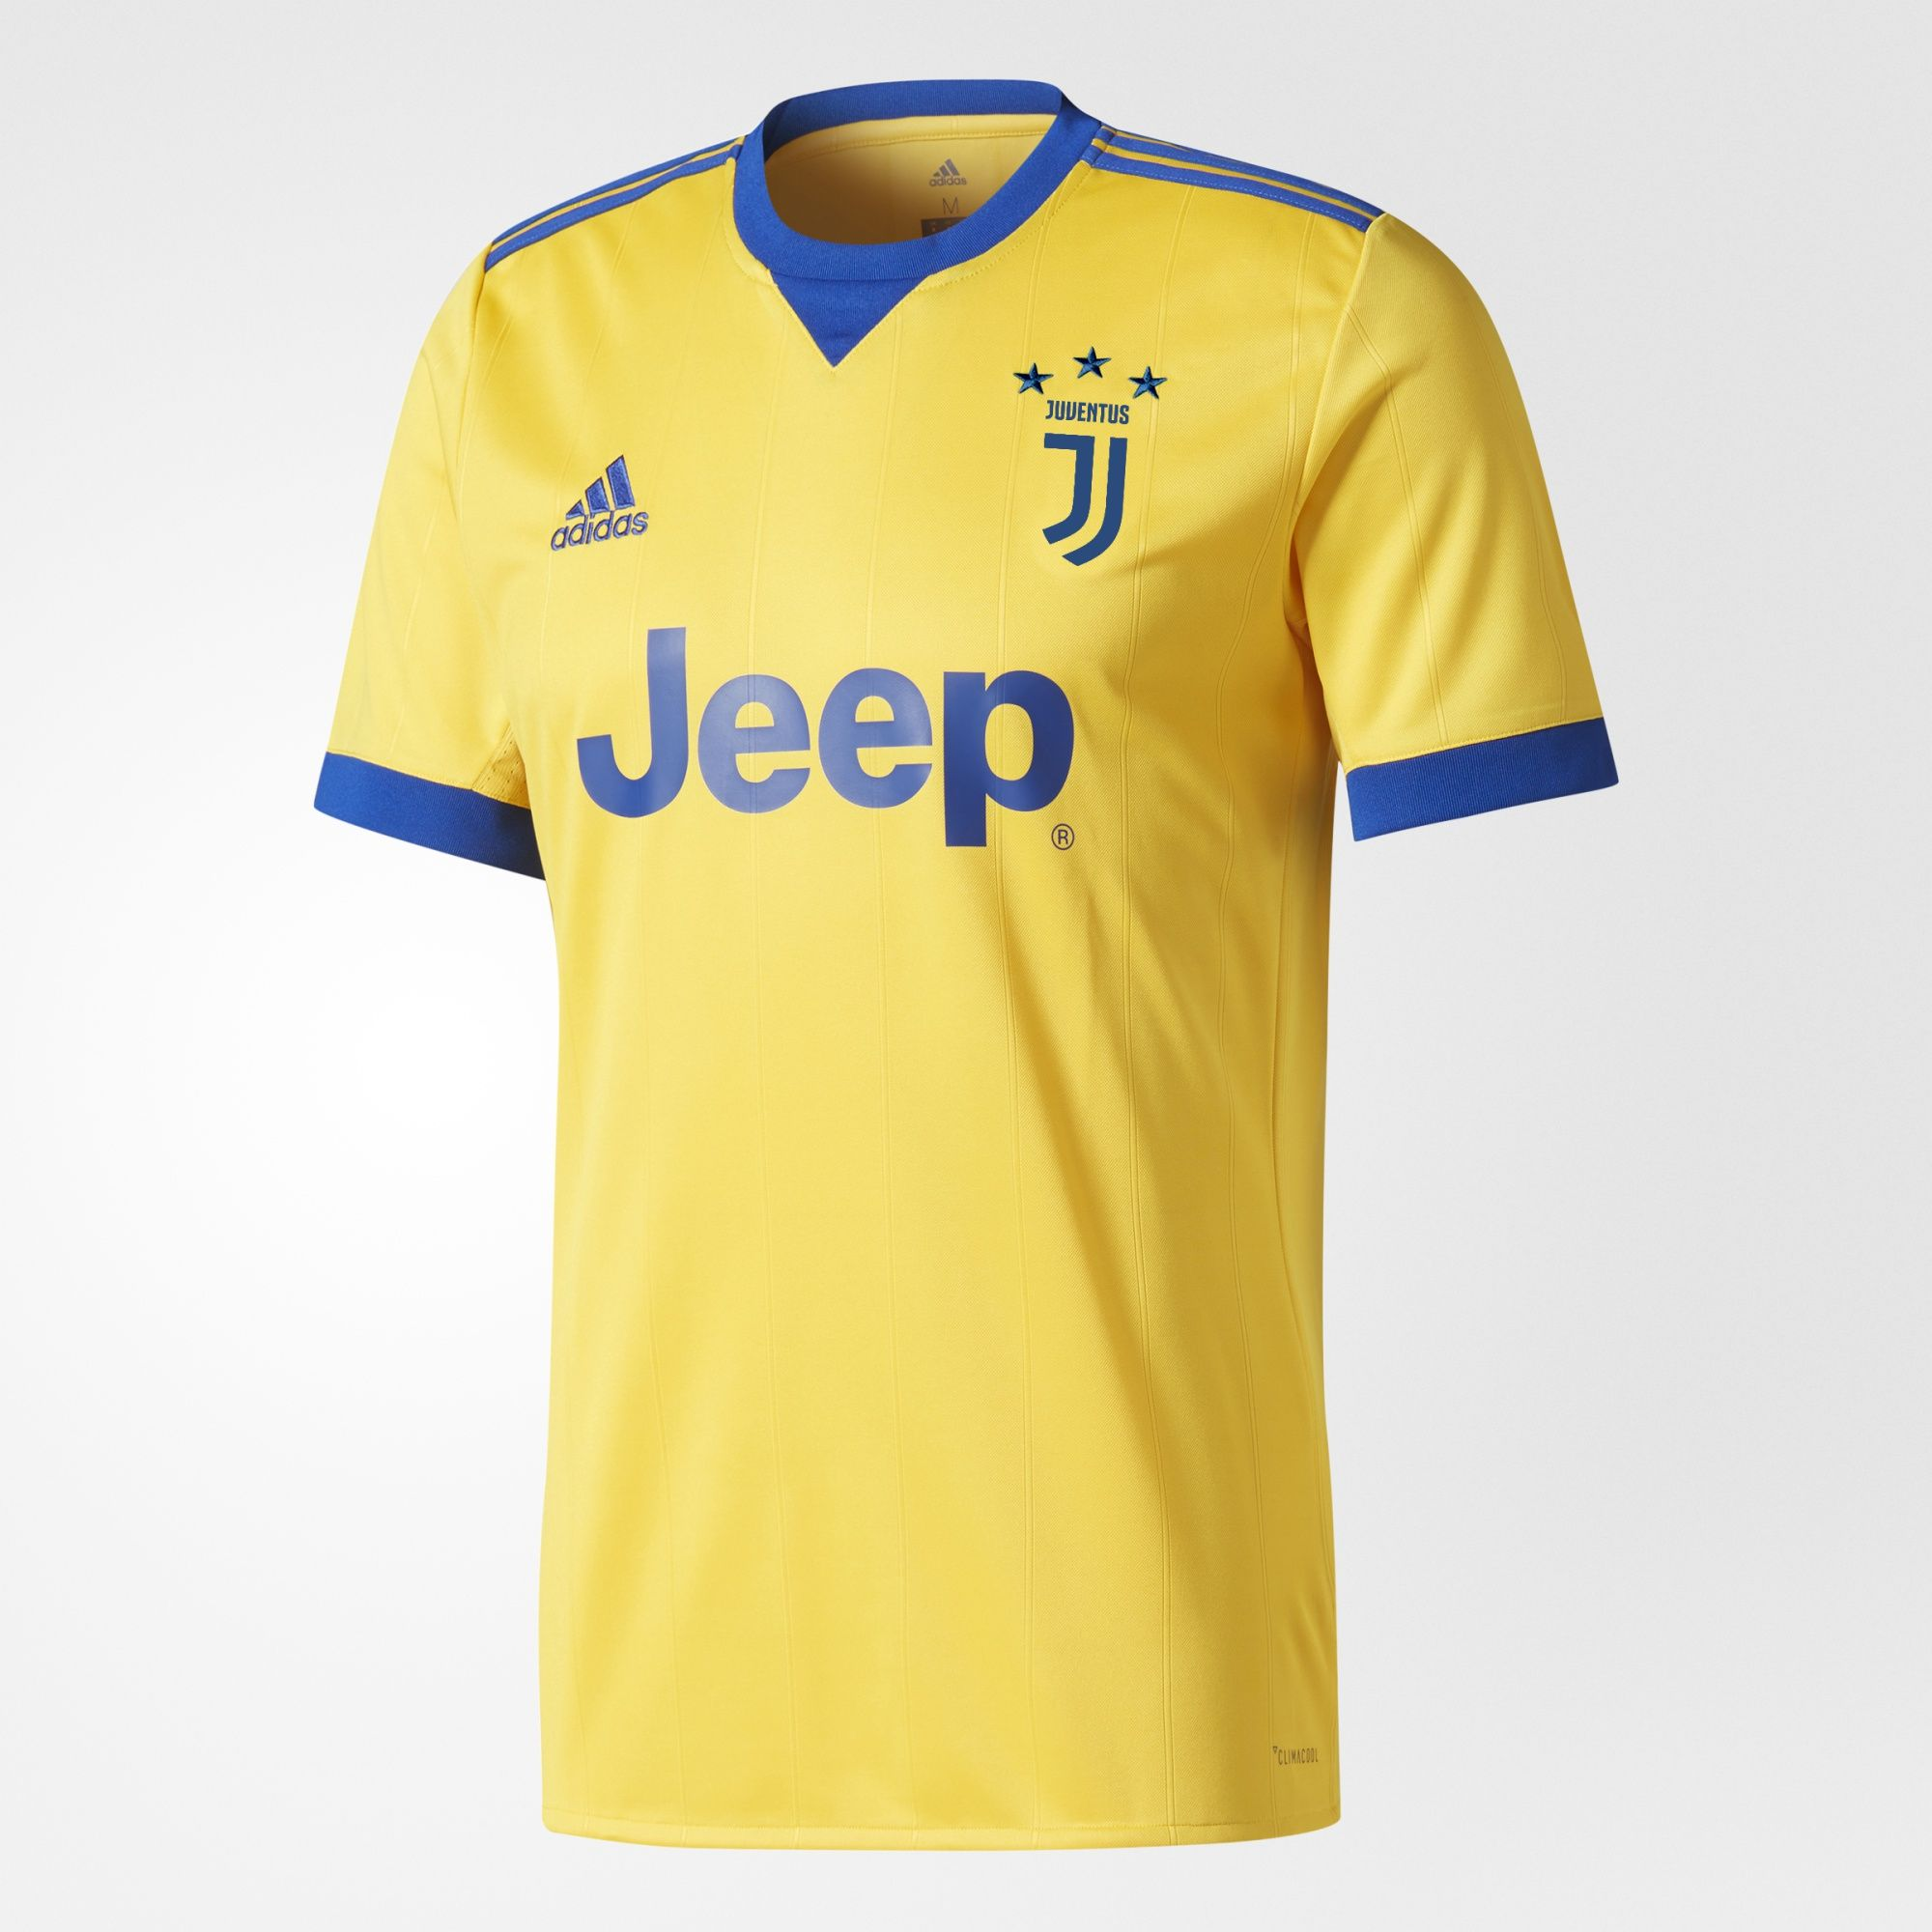 14b7a1222 Gallery  Juventus releases 2017-18 adidas away kit - Style - FTBL Life